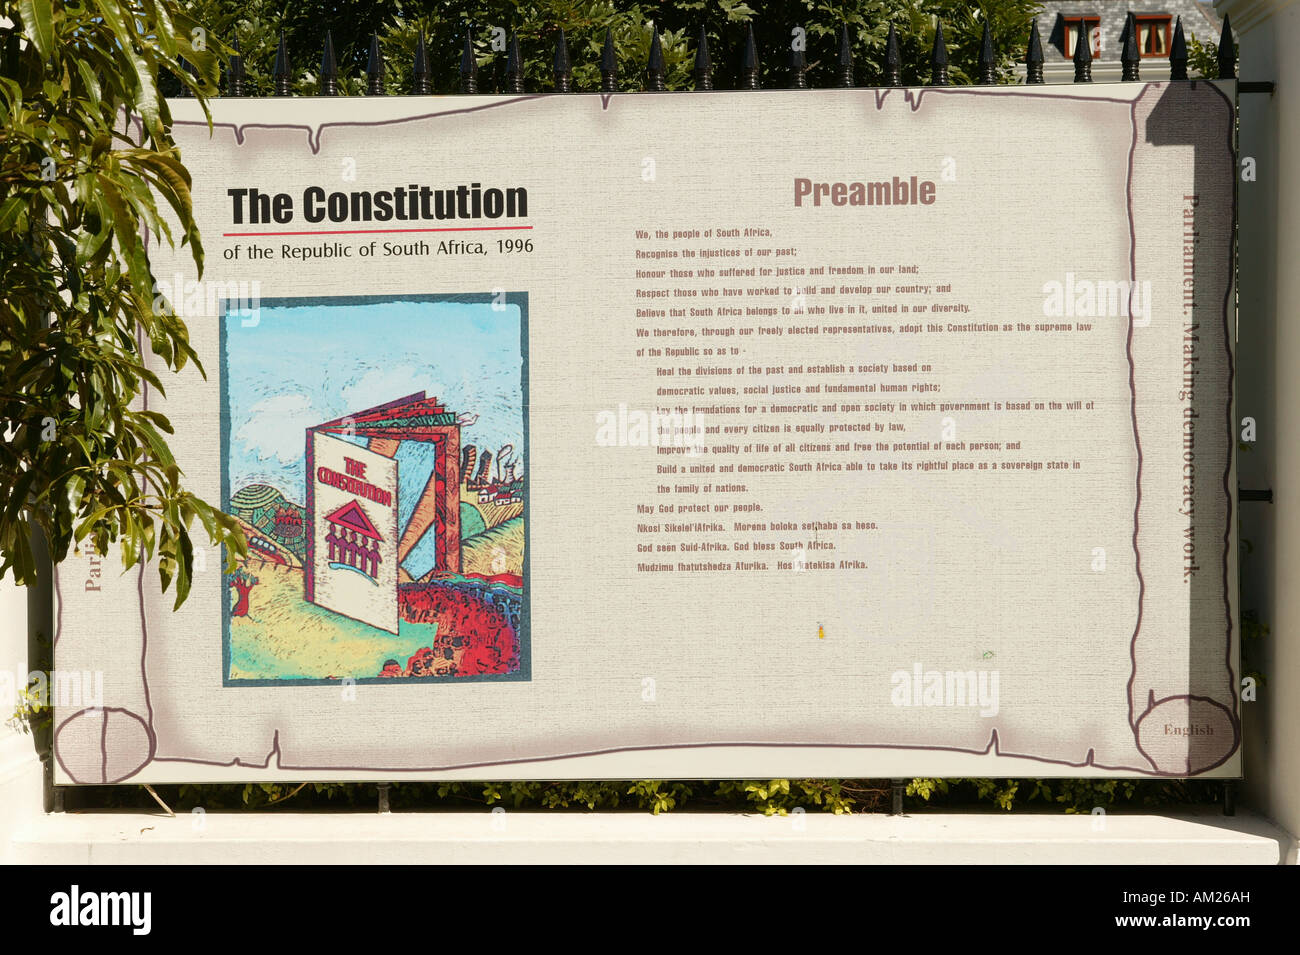 The basic rights of South Africa in Afrikaans in front of the parliament, Cape Town, South Africa - Stock Image